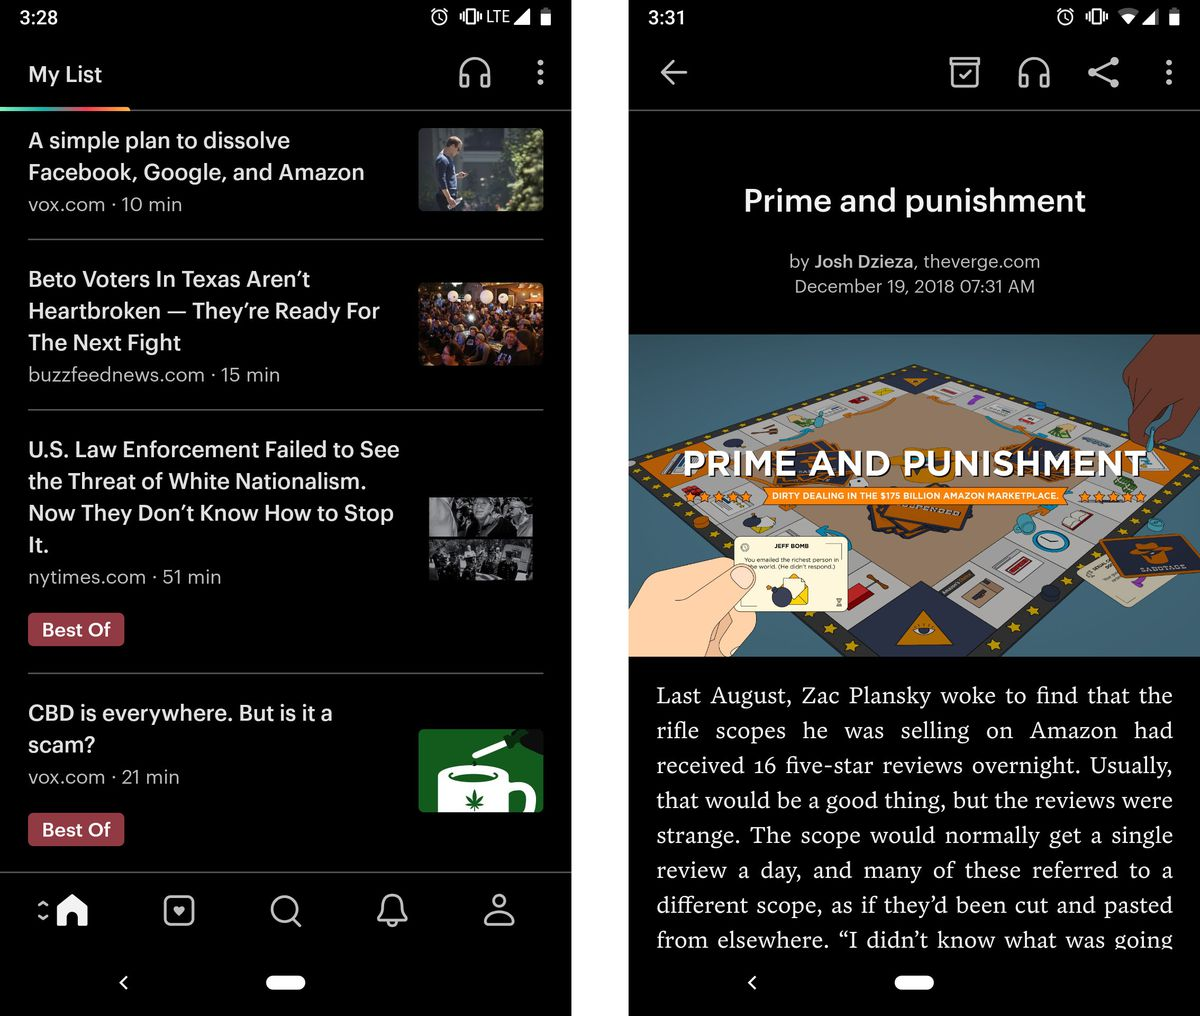 sony ten 3 apps download for pc